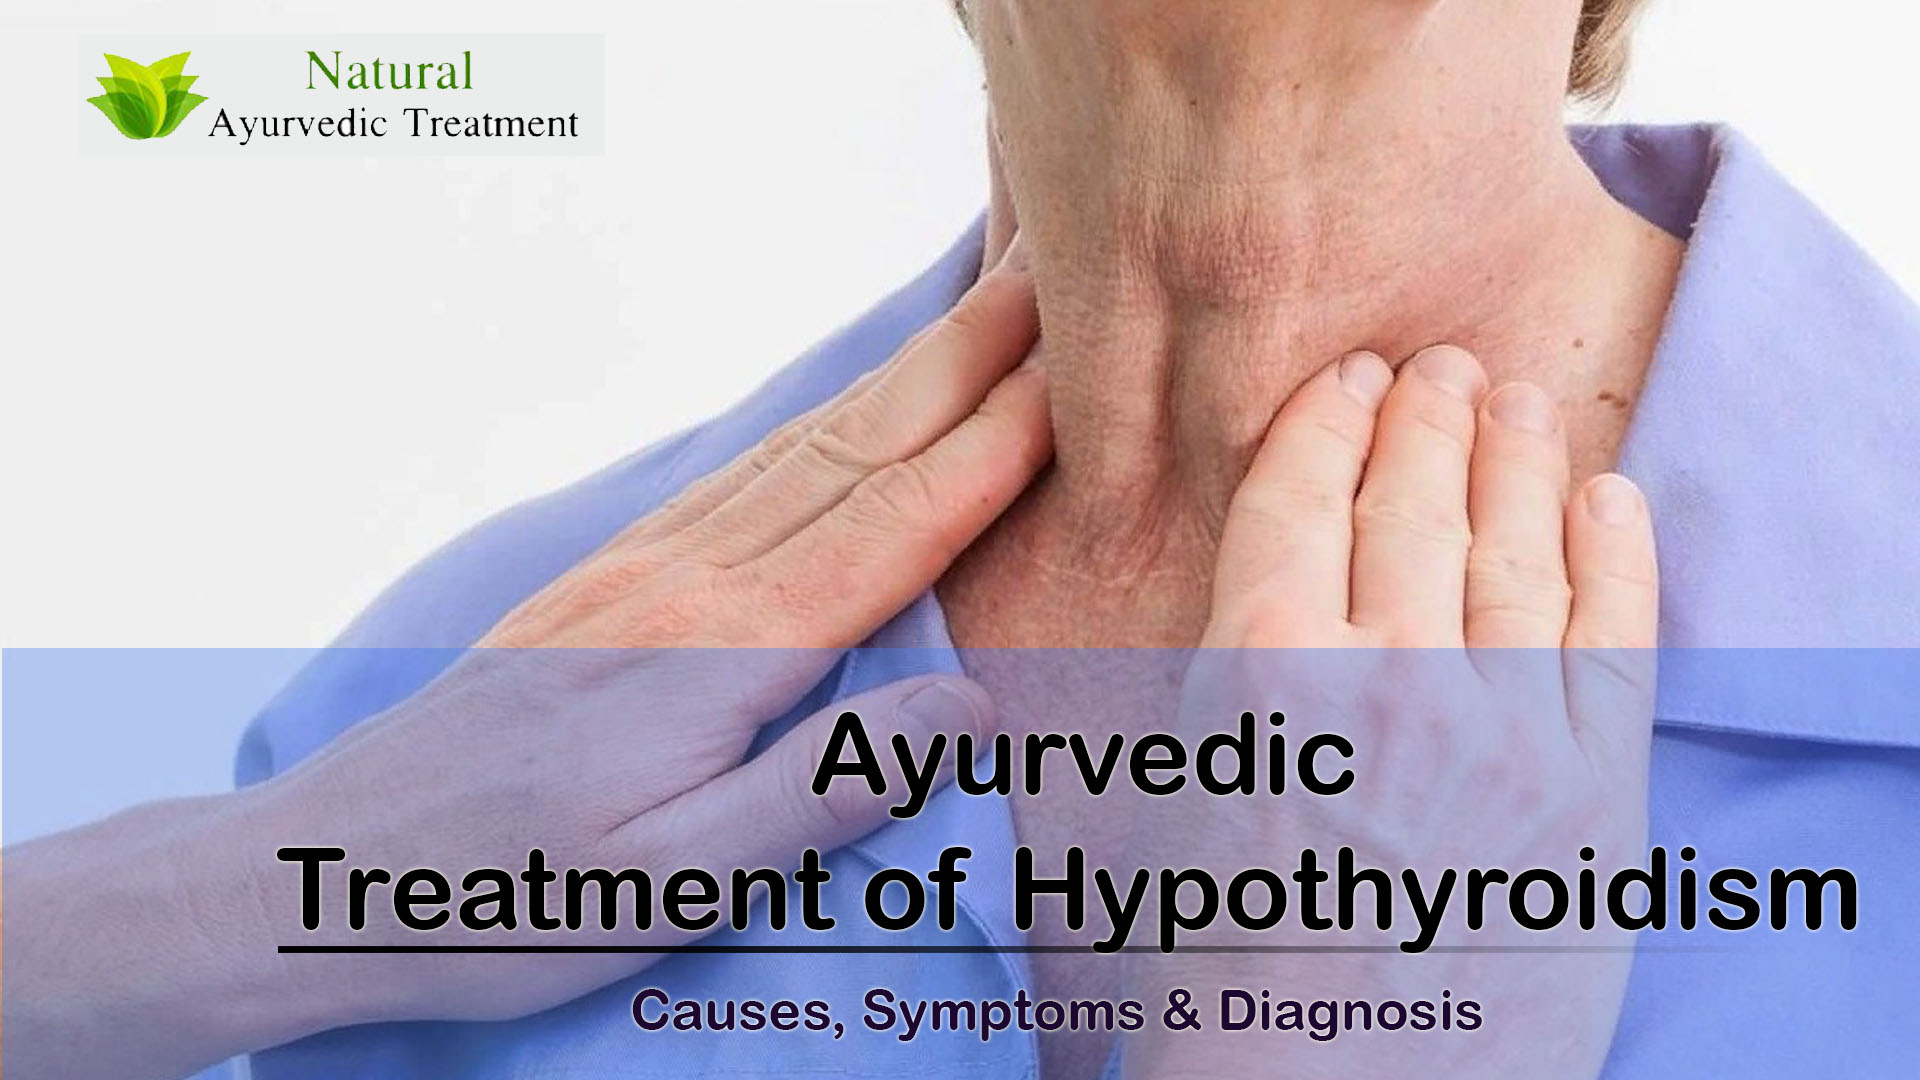 Ayurvedic Treatment of Hypothyroidism - Causes, Symptoms & Diagnosis